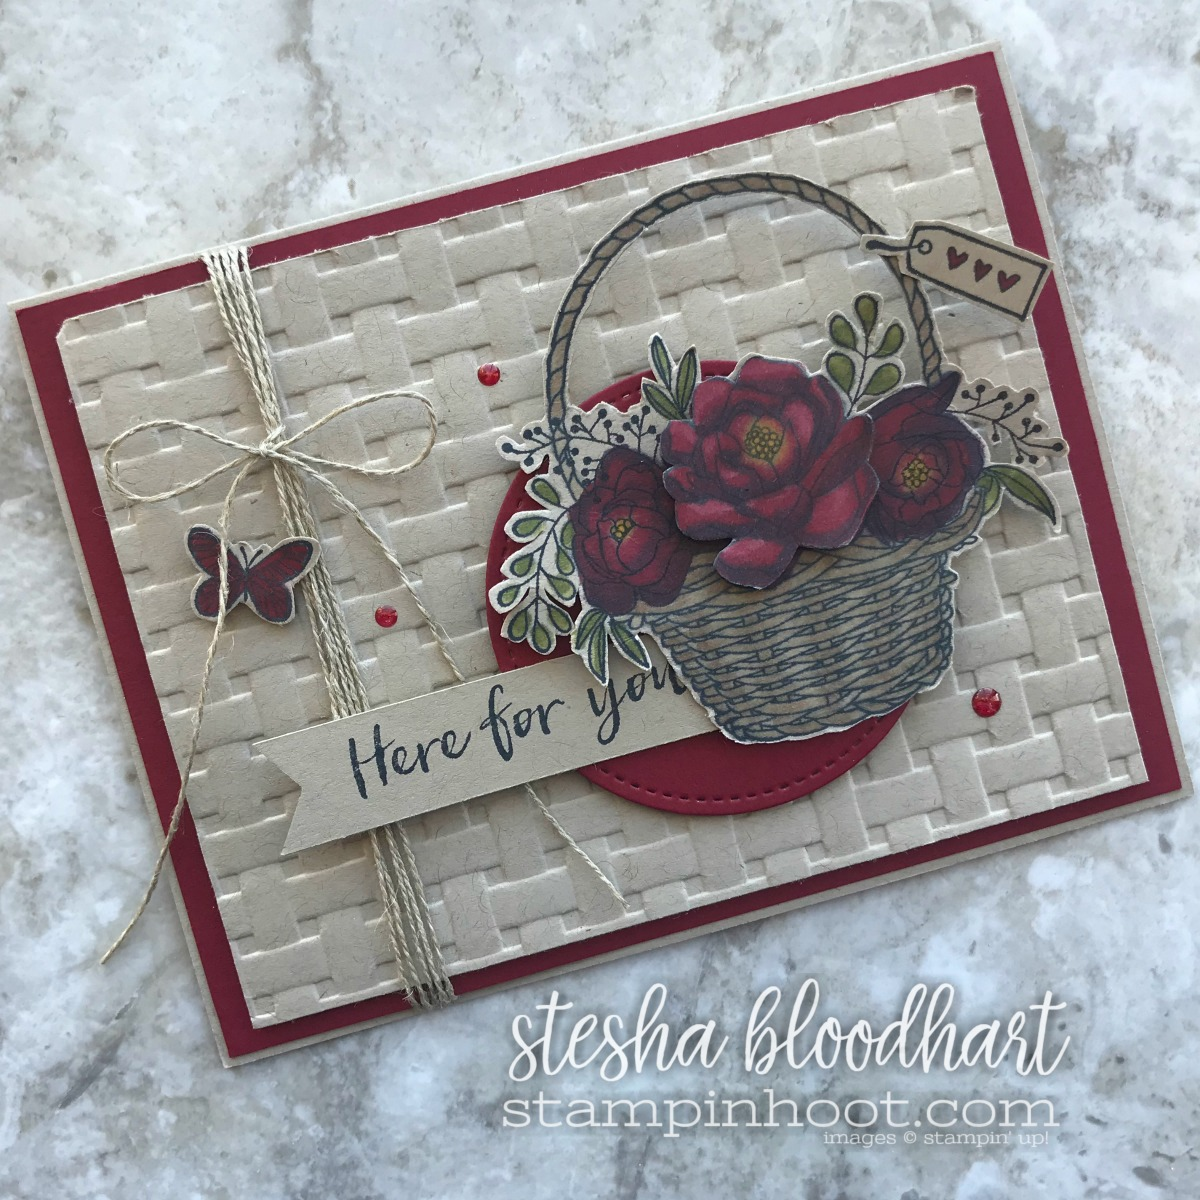 Blossoming Basket Bundle - Free Sale-a-Bration Item with $100 Purchase. Ends March 31st, 2018. Earn online by Shopping With Stampin' Hoot, Stesha Bloodhart #steshabloodhart #stampinhoot